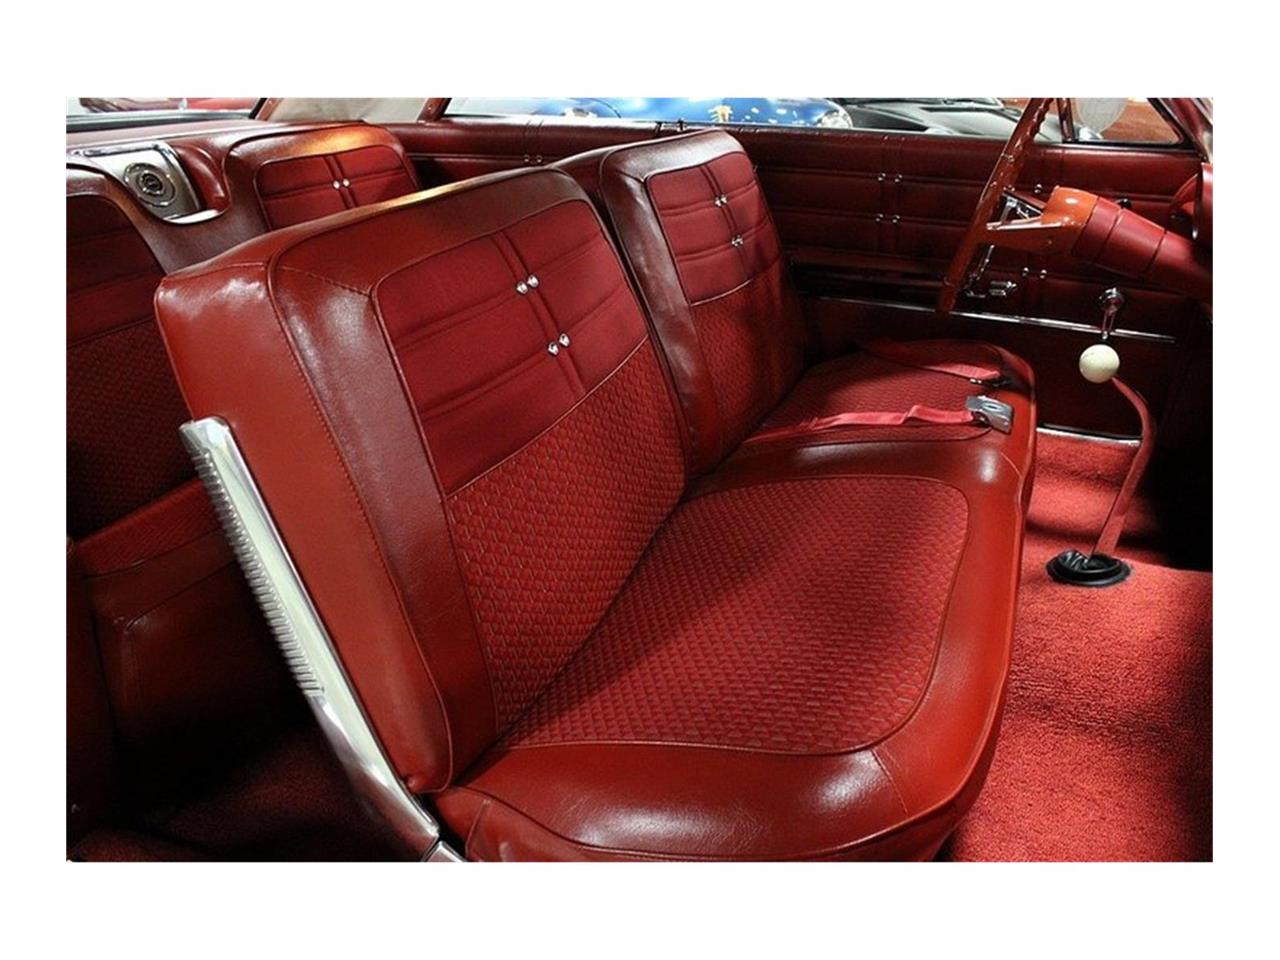 Large Picture of Classic '63 Chevrolet Impala located in Sterling Heights Michigan - $360,000.00 - QK96